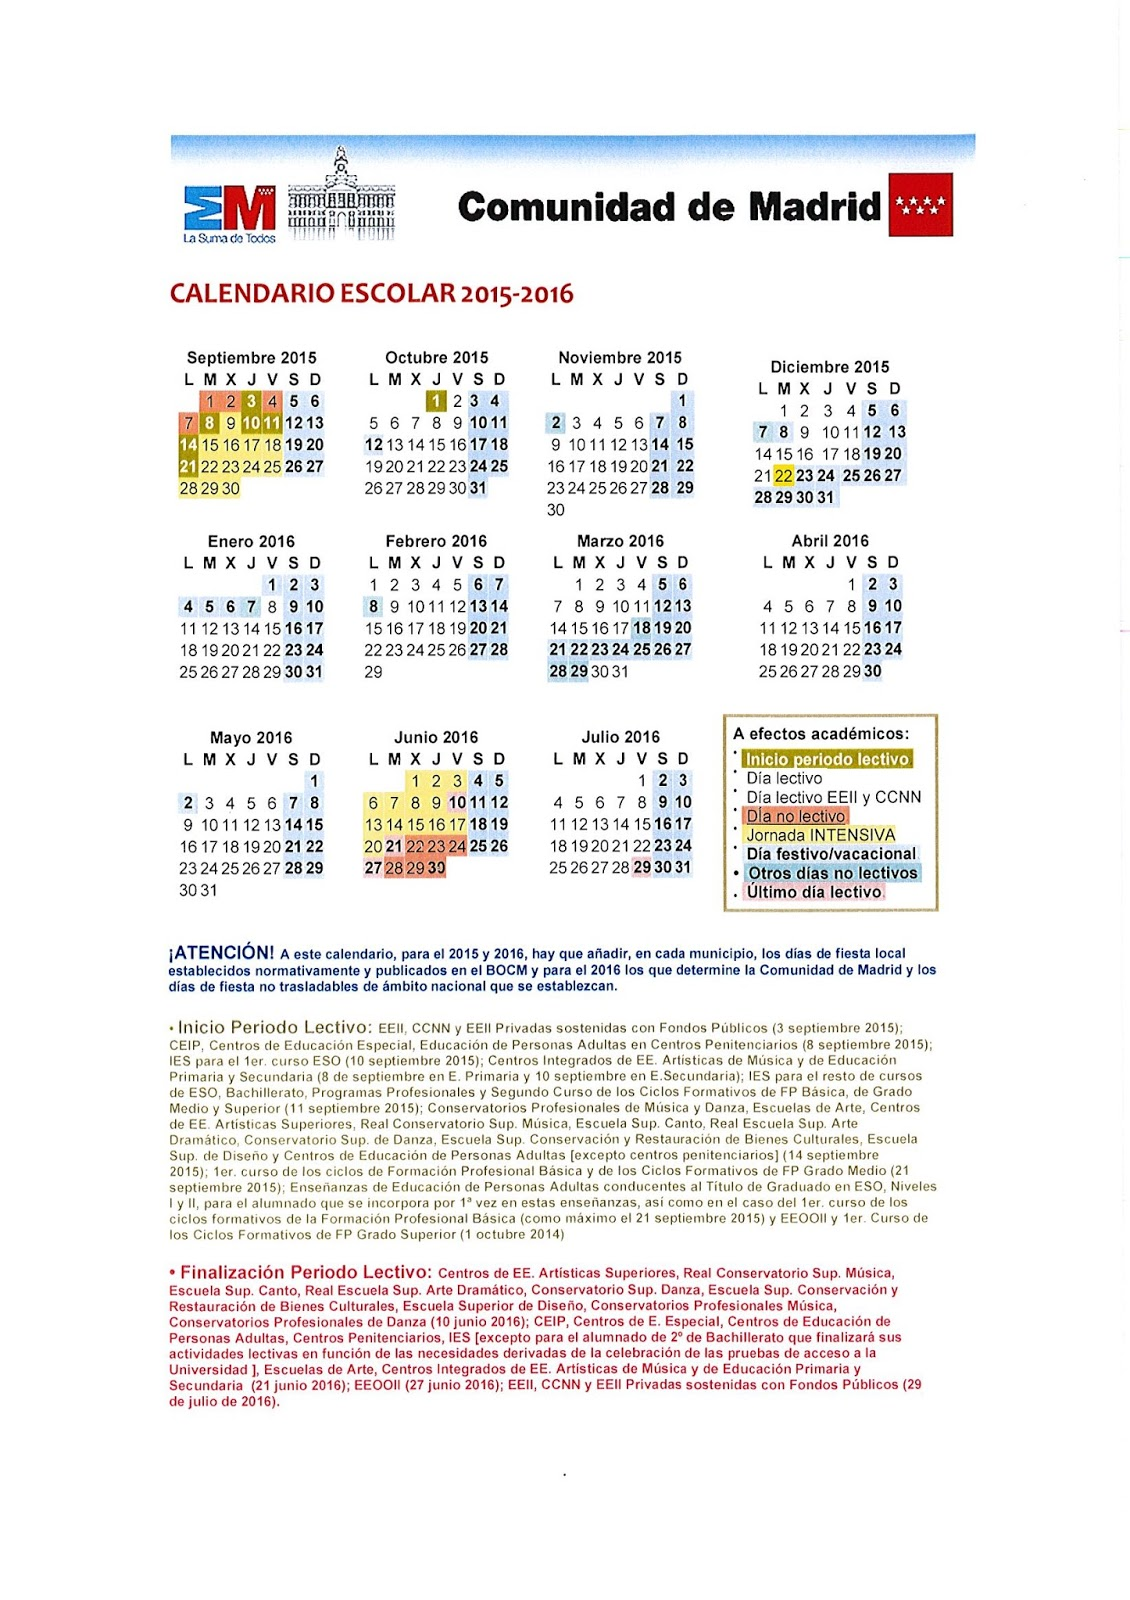 Calendario Academico Madrid.Calendario Escolar 2015 2016